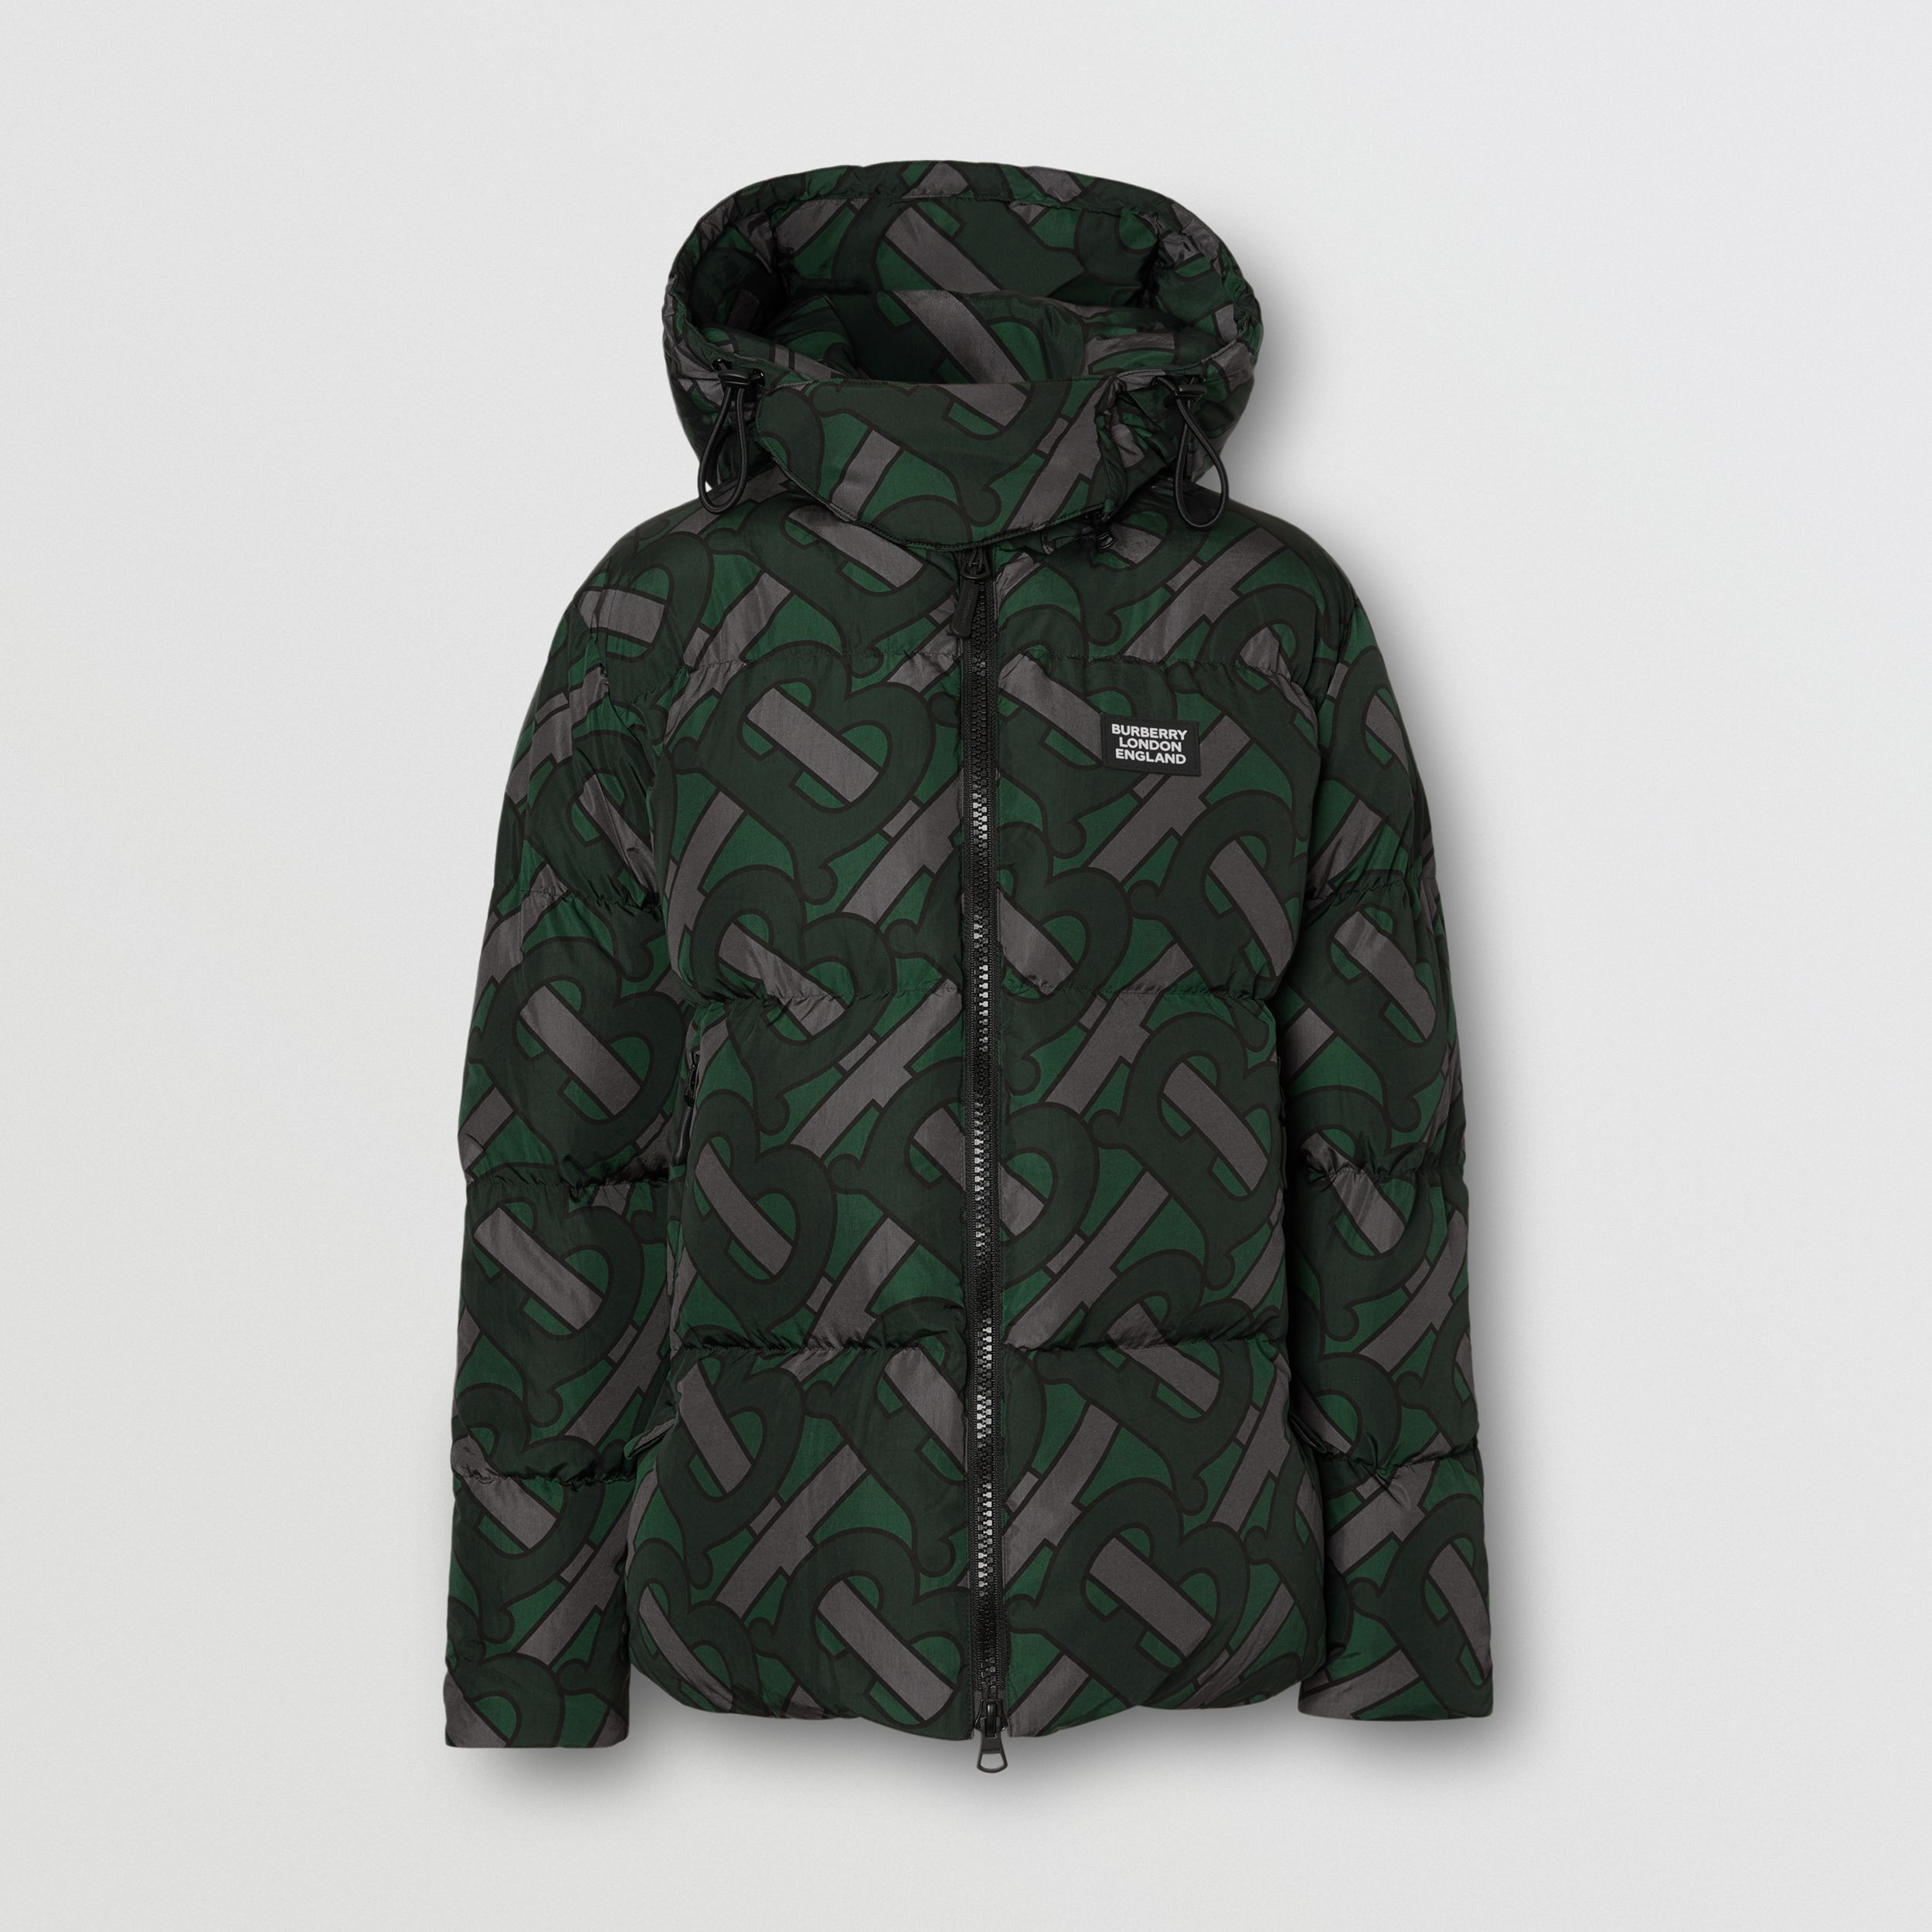 Monogram Print Puffer Jacket in Forest Green | Burberry - 1